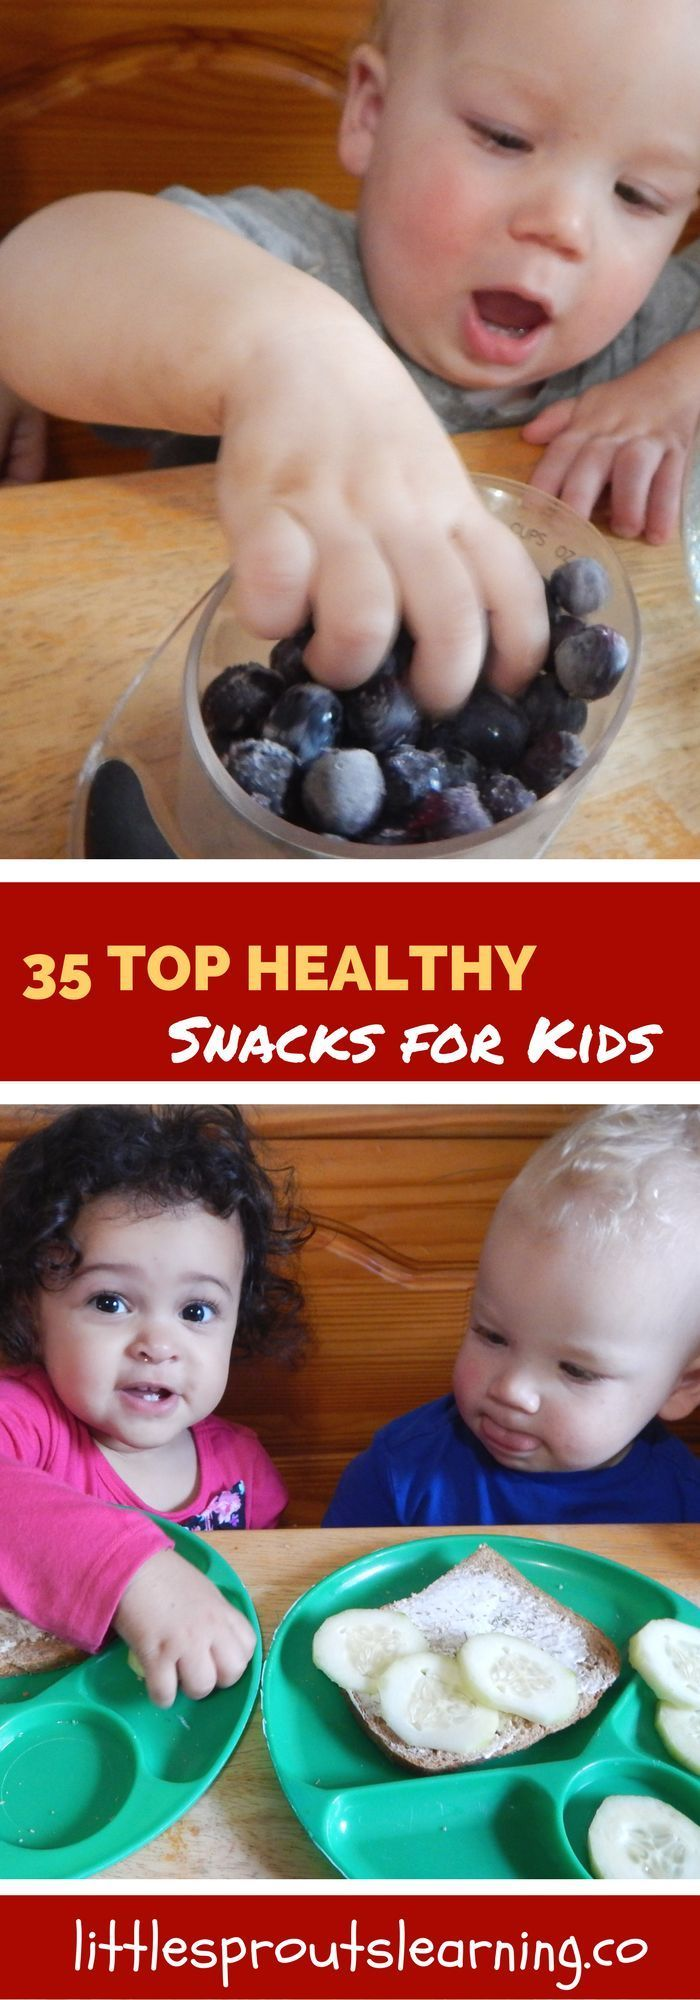 Do you ever get tired of serving the same ole thing to your kids for snack? Do you wish you had healthy snacks for them you feel good about?